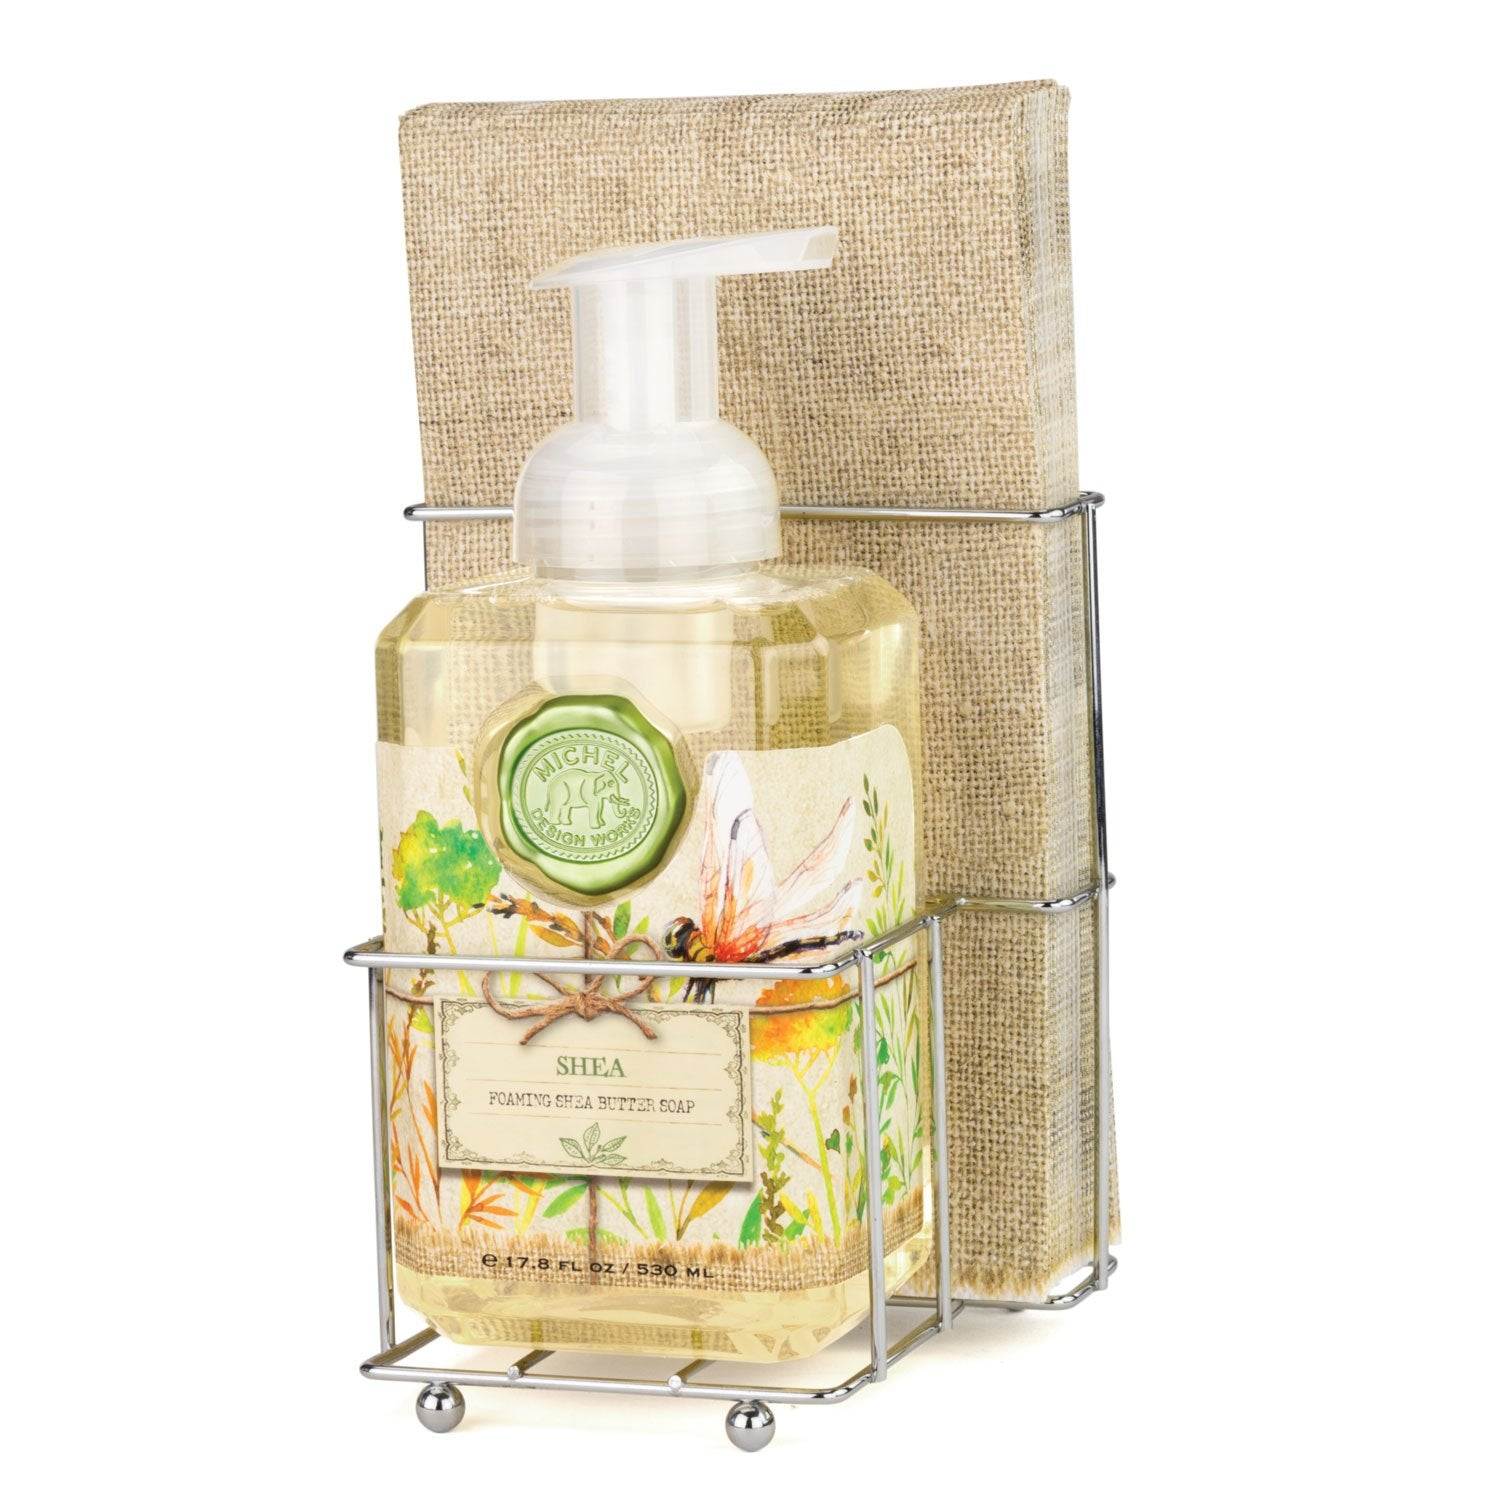 Shea Foaming Hand Soap Napkin Set